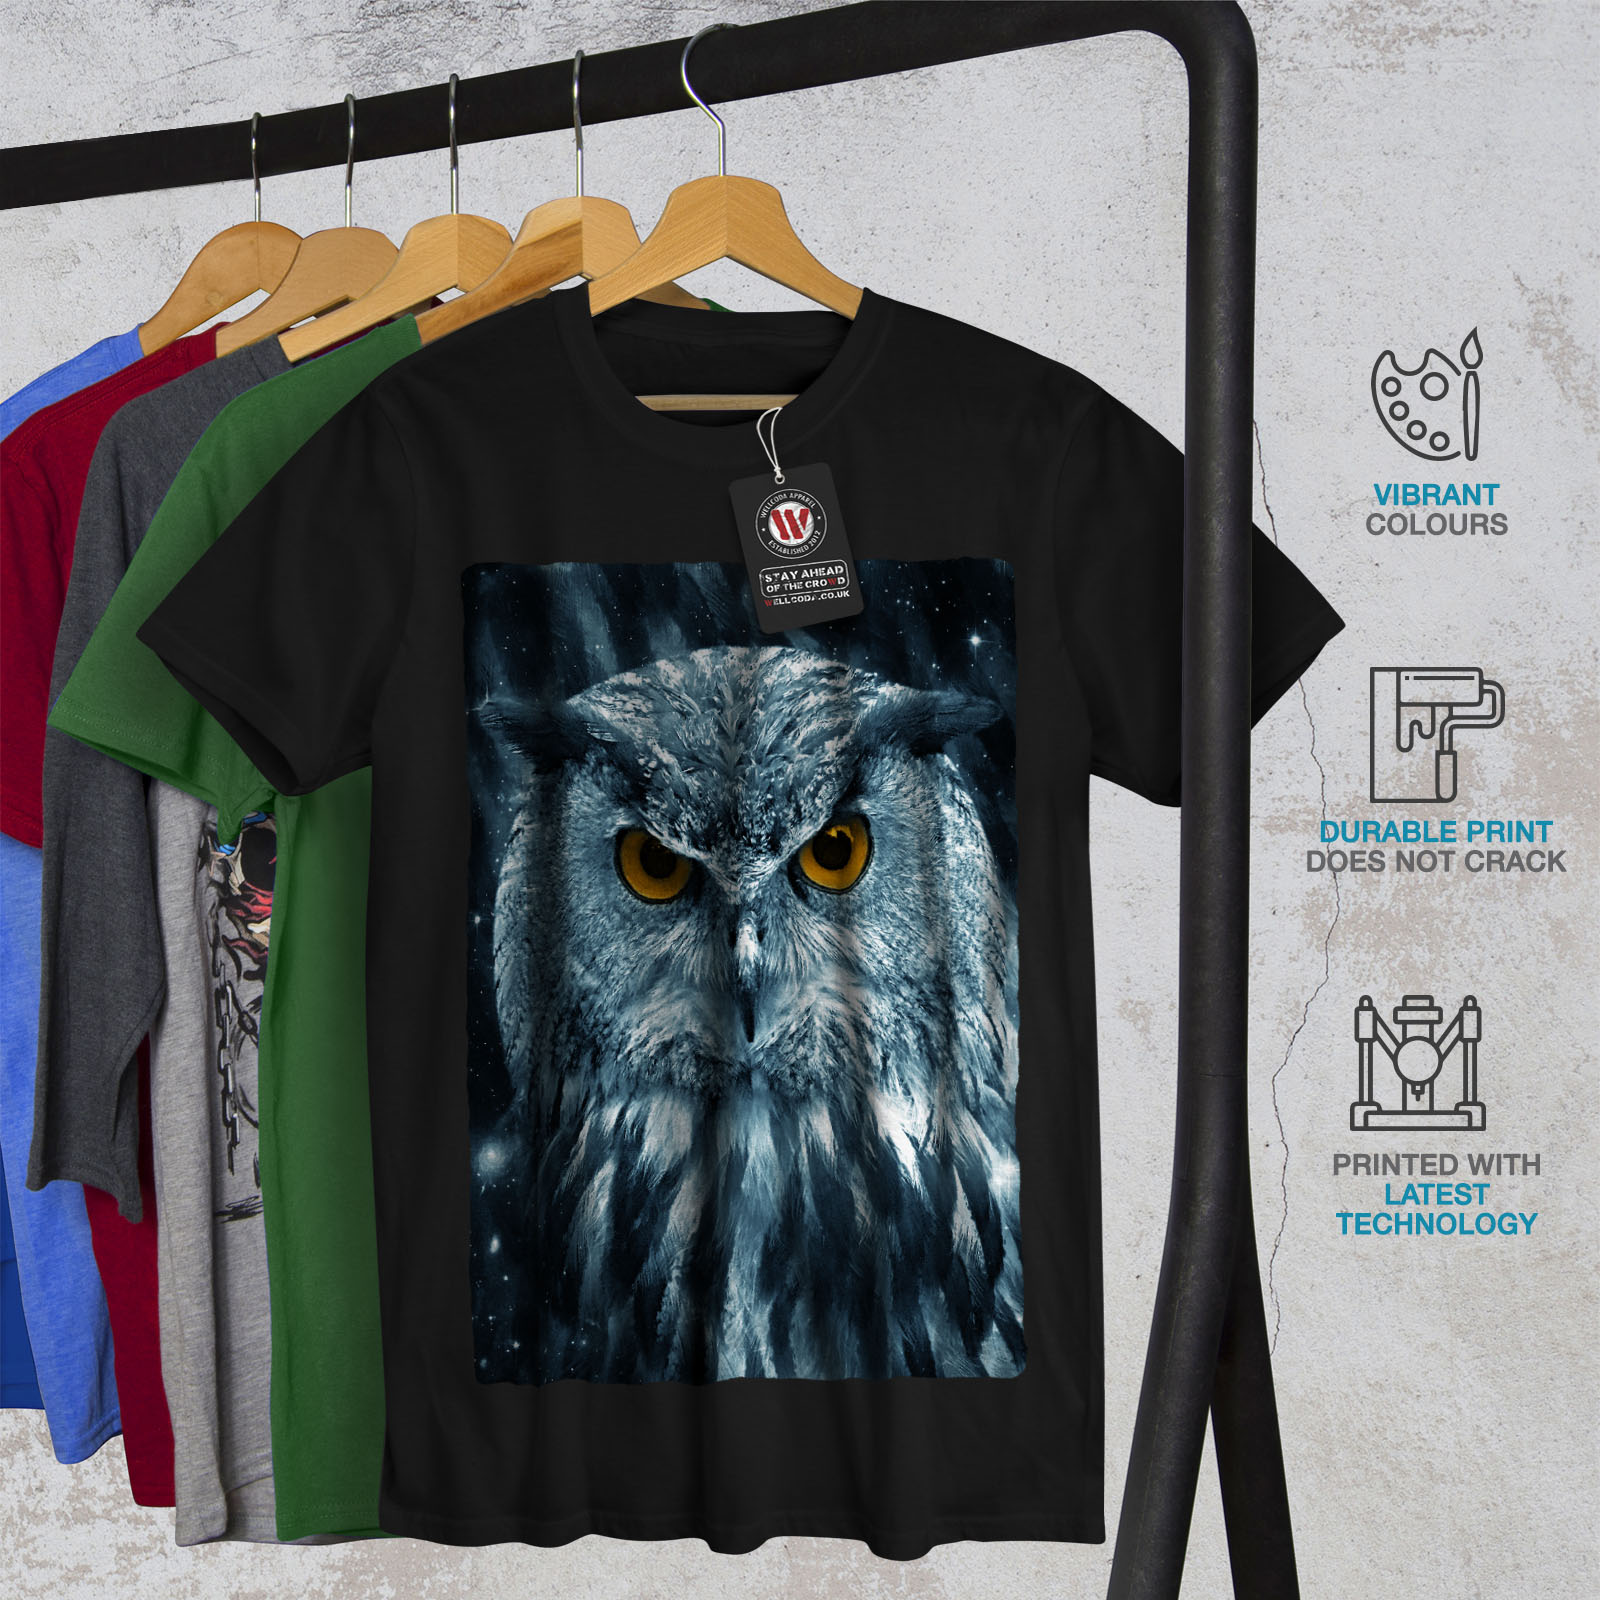 miniature 6 - Wellcoda-Wild-Looking-Owl-Mens-T-shirt-Mother-Graphic-Design-Printed-Tee